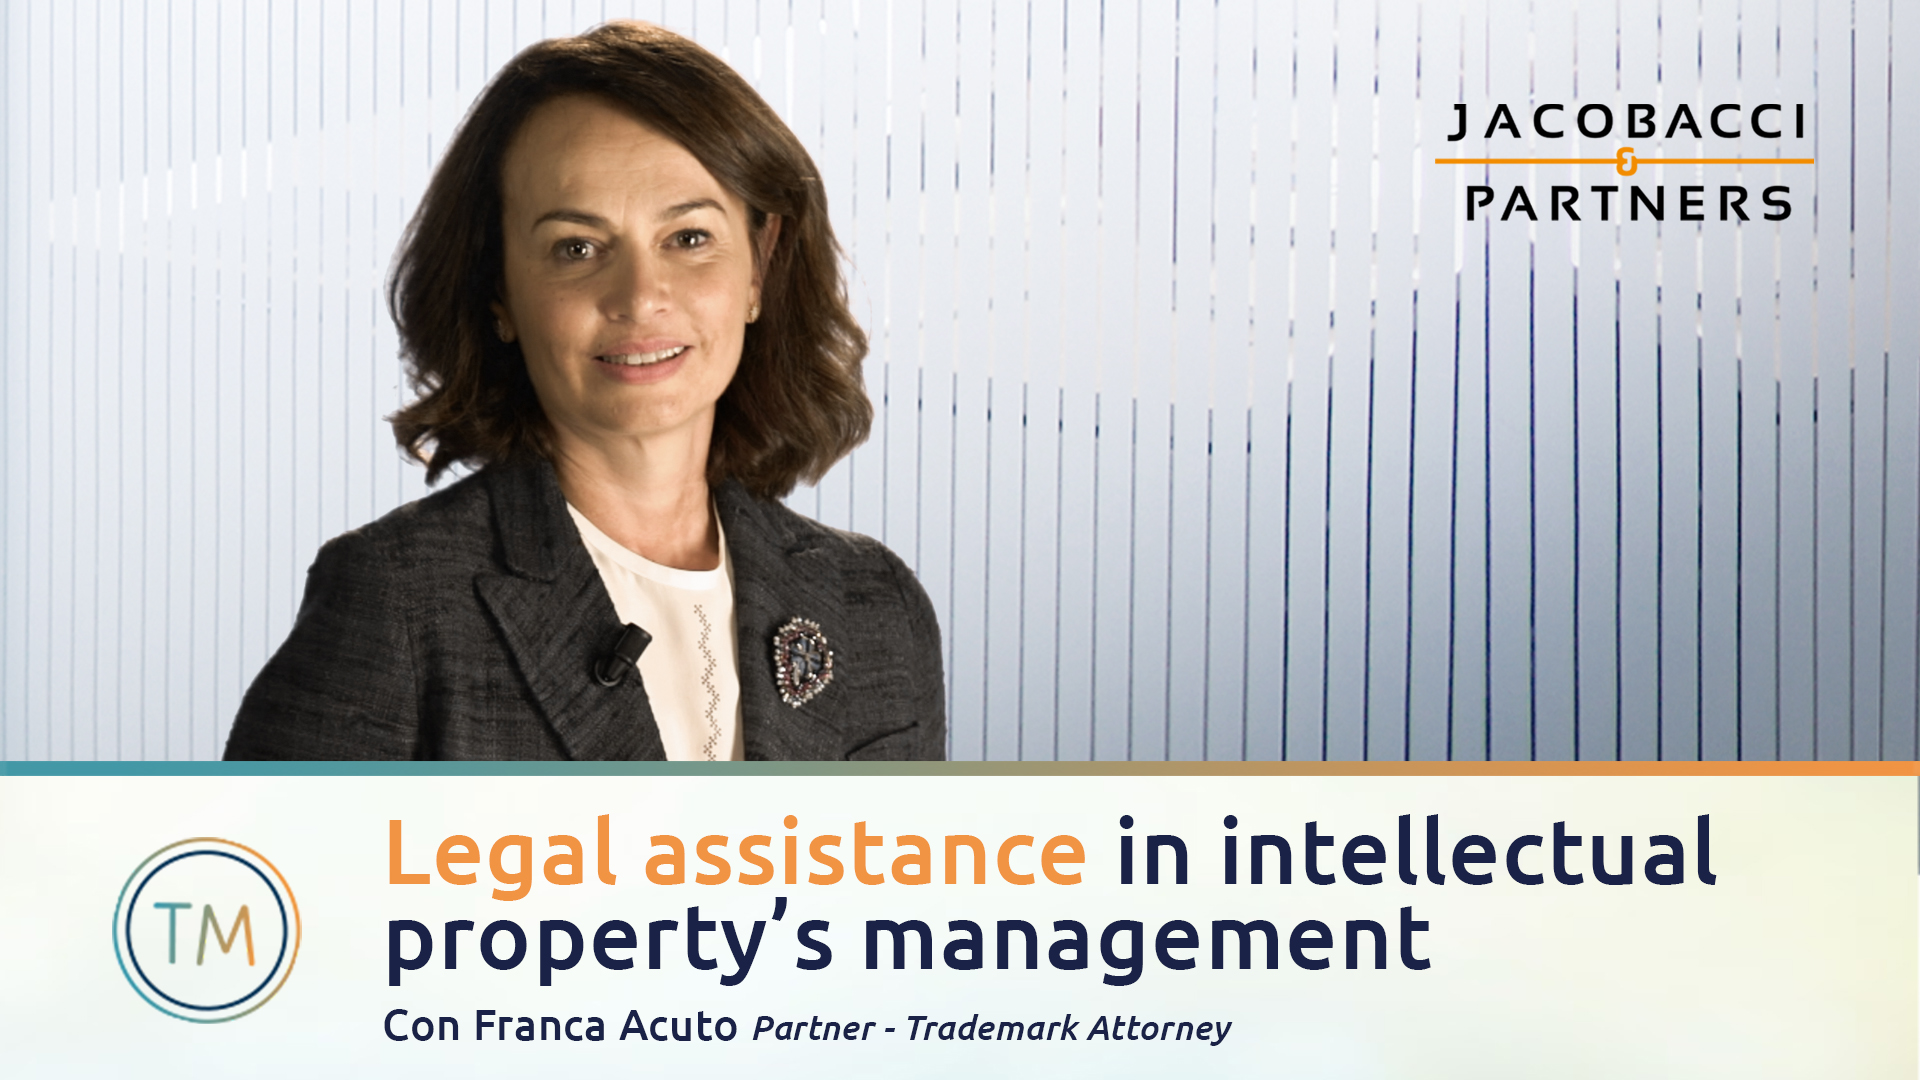 The importance of legal assistance in the management of intellectual property